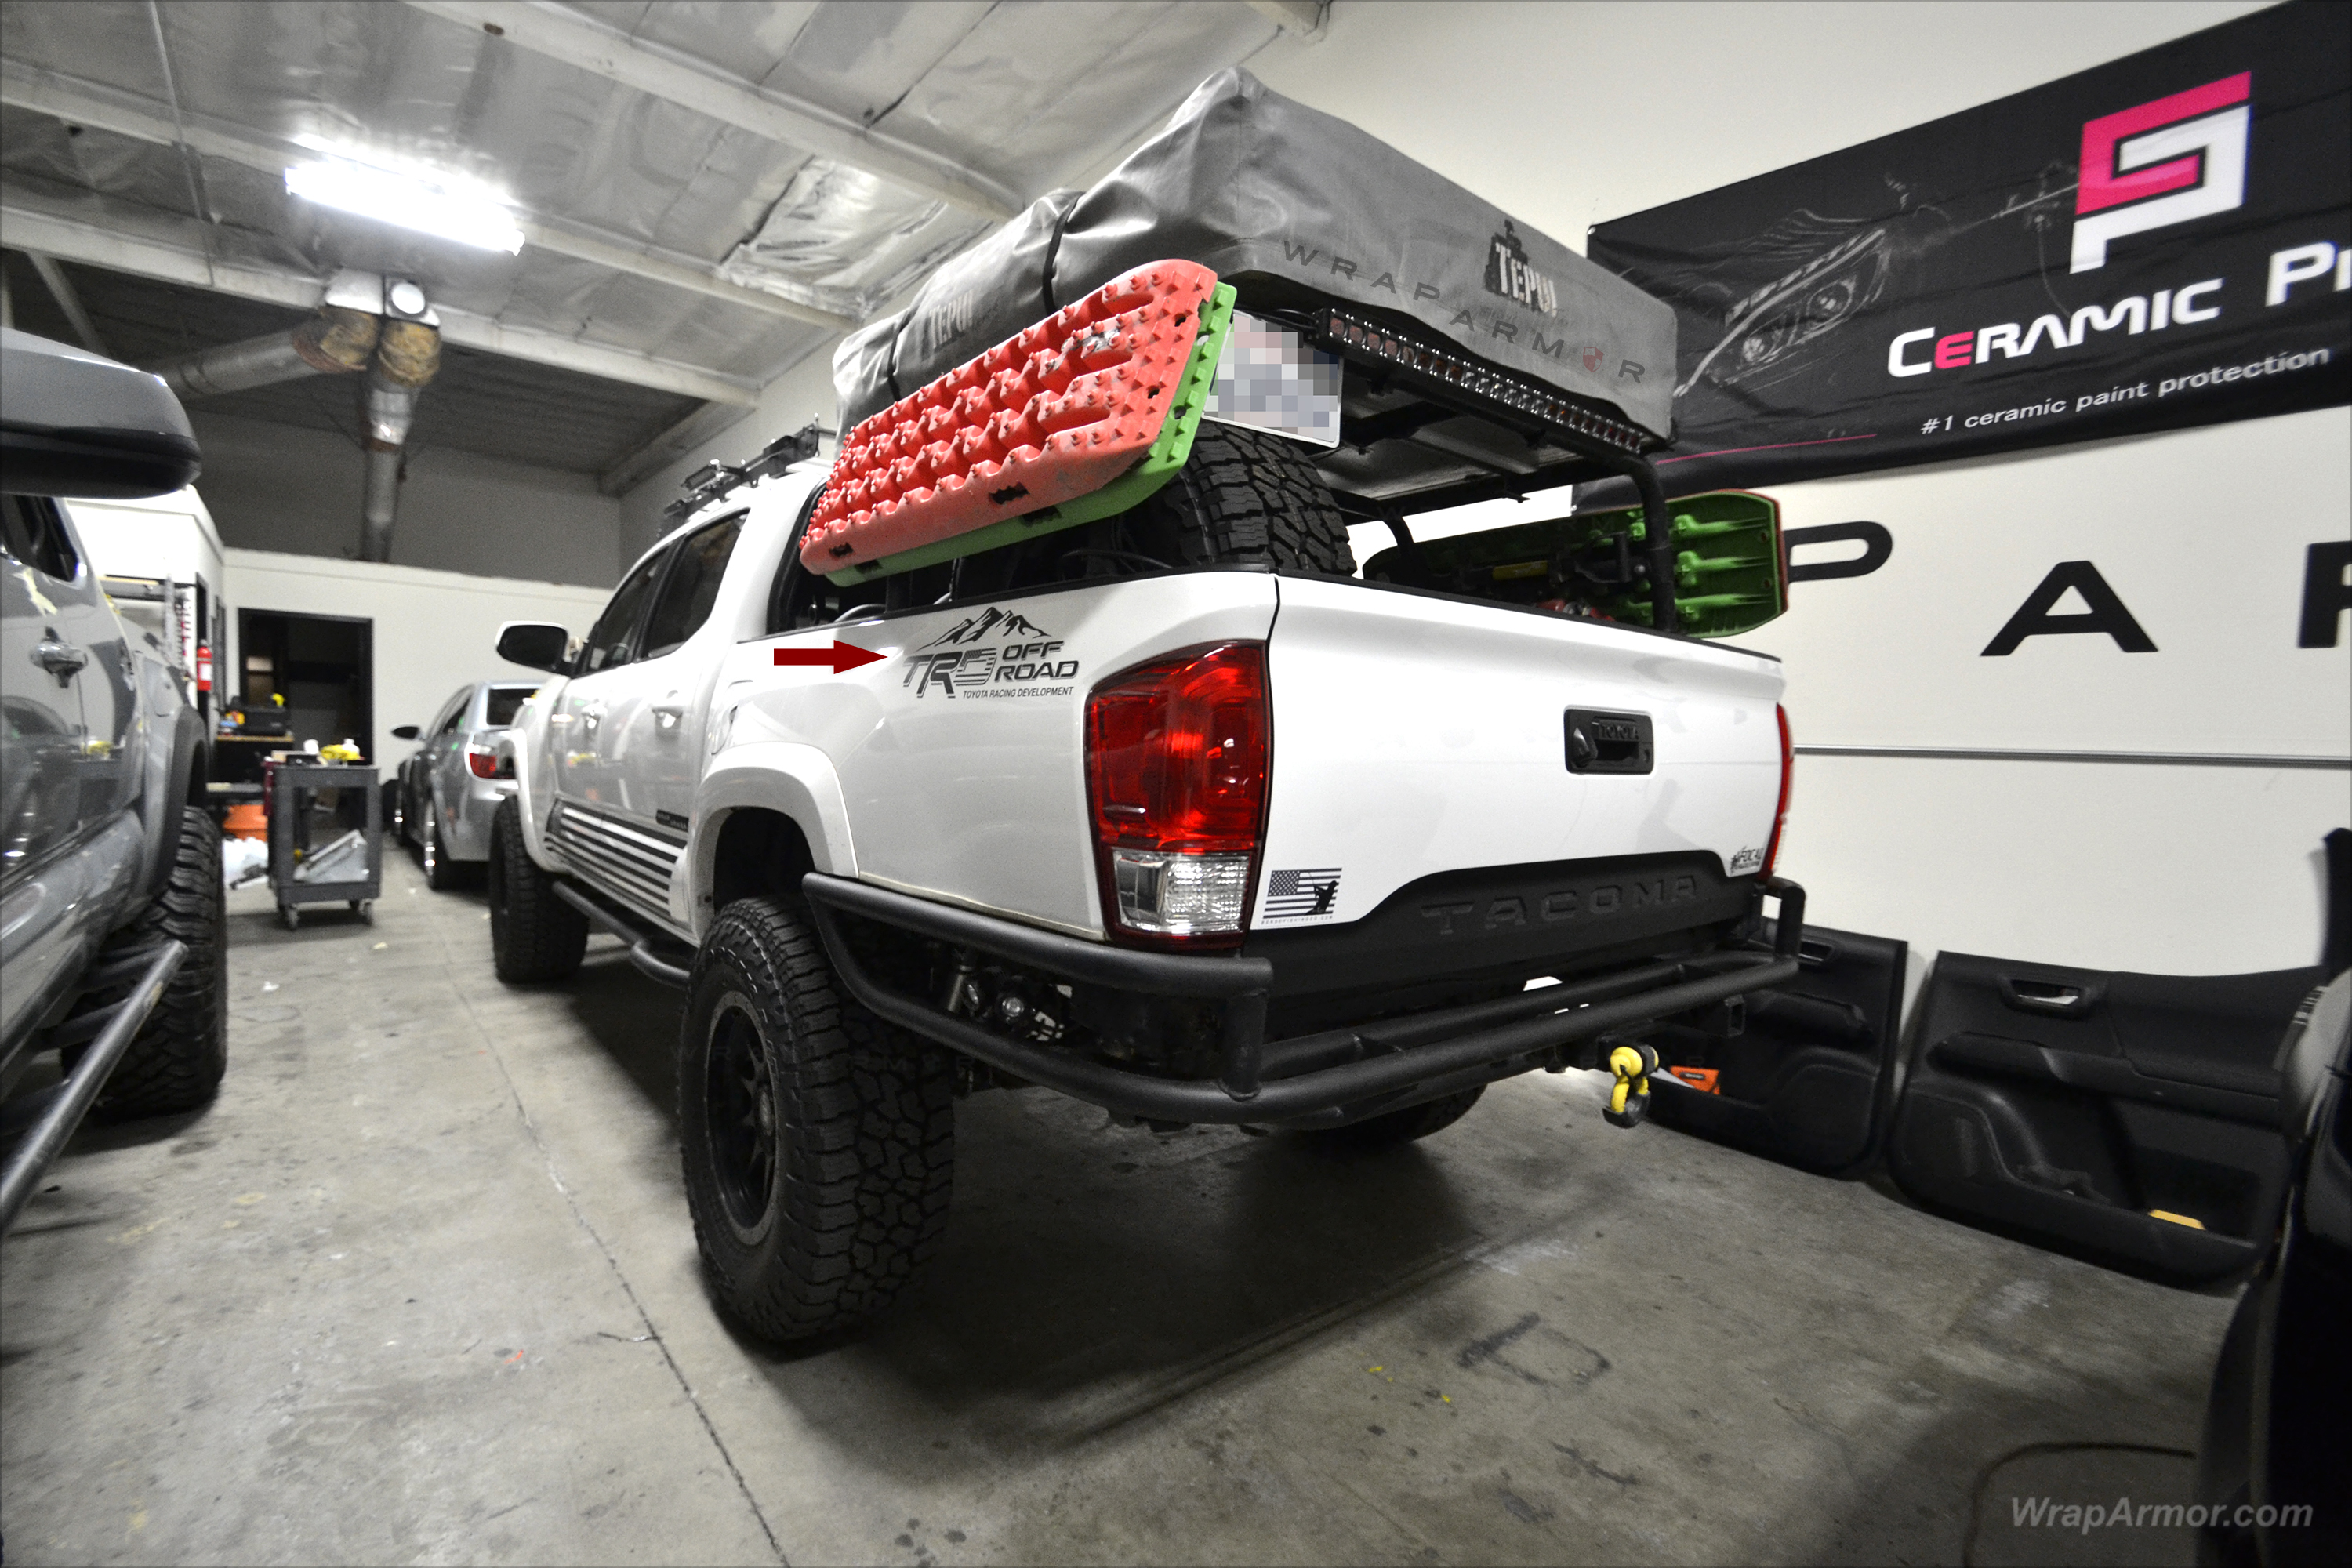 What's Included: With your purchase, a full instruction page is included, along with an installation squeegee, and most importantly the graphics. WrapArmor Tailgate Graphics Precut Installation Instructions Squeegee Fitment: 2015, 2016, 2017, 2018 Toyota Tacoma